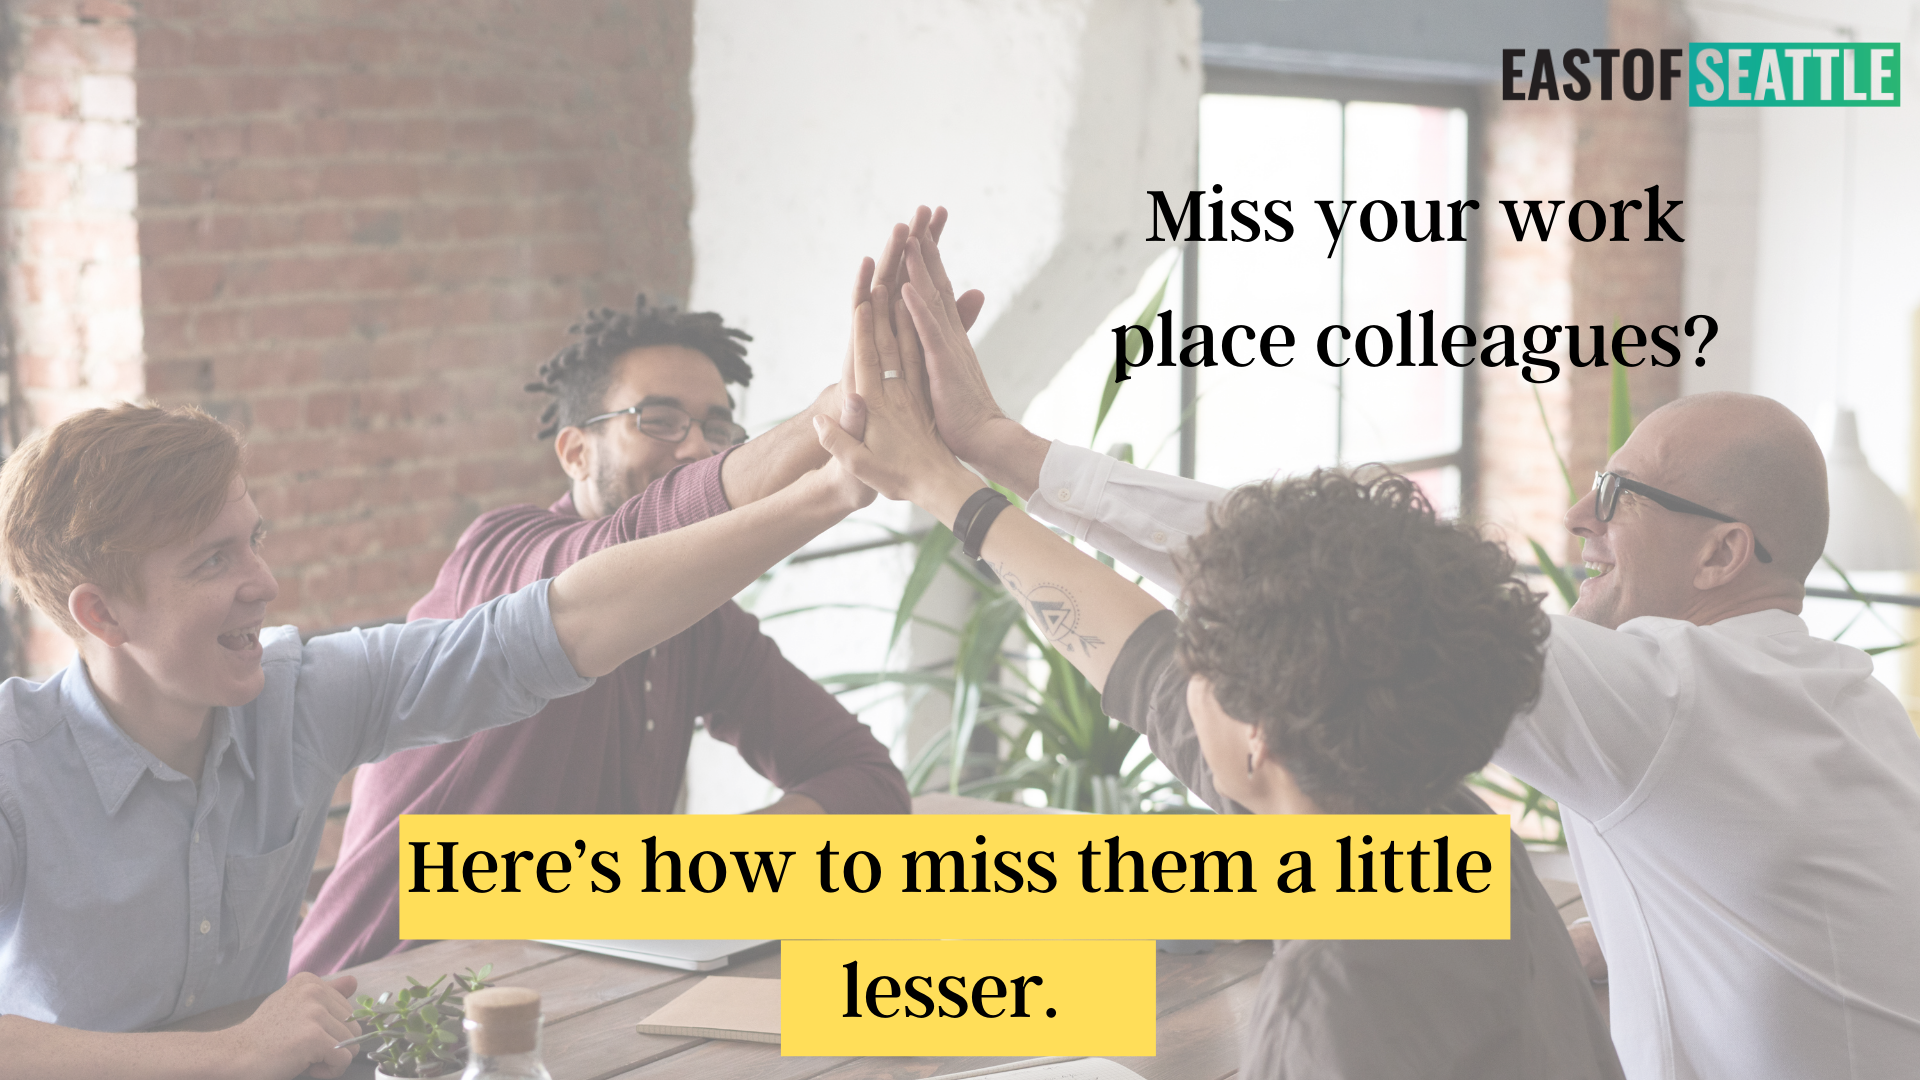 Miss your work place colleagues? Here's how to miss them a little lesser.